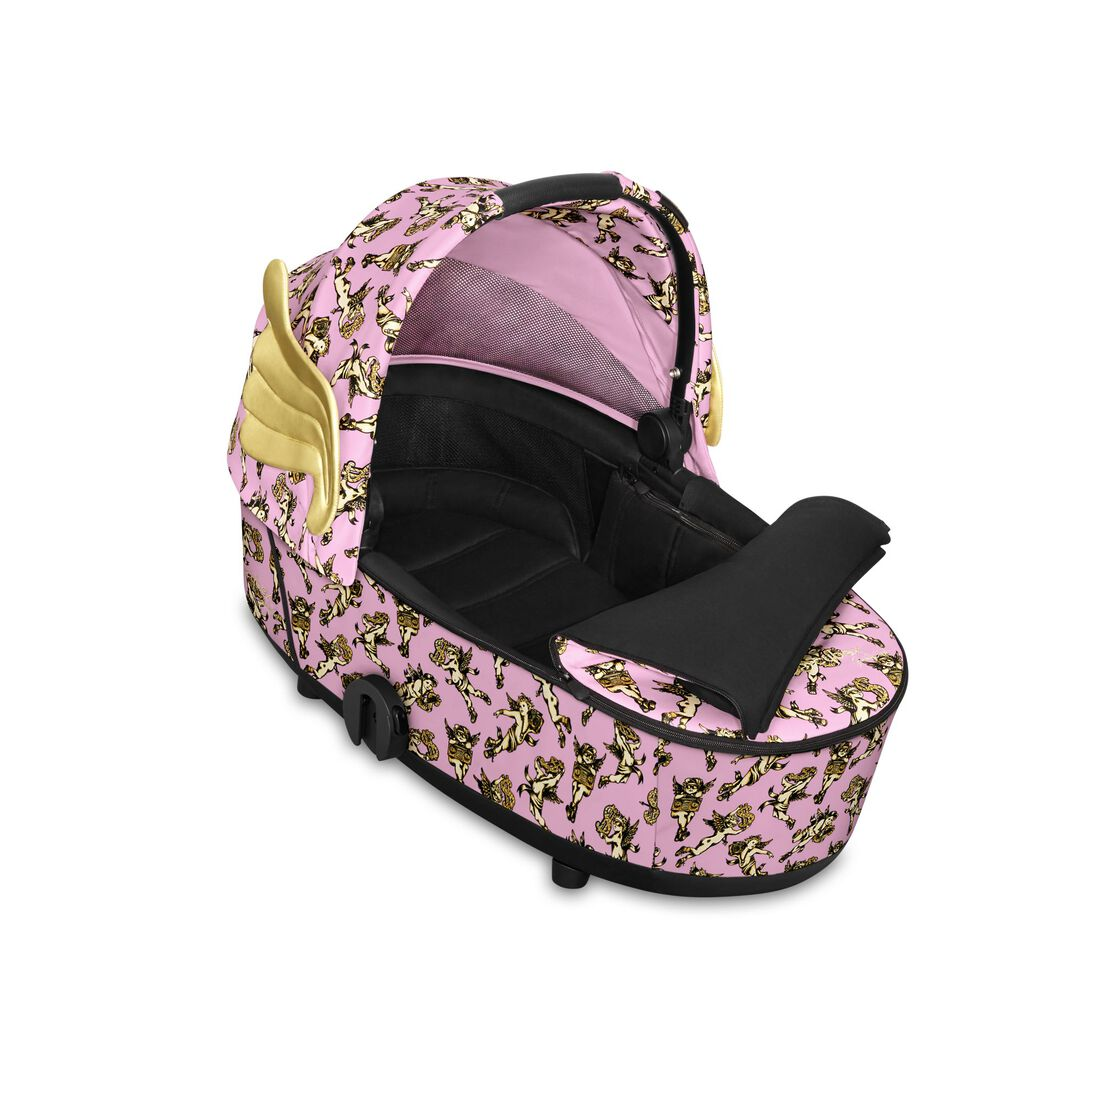 CYBEX Mios Lux Carry Cot - Cherubs Pink in Cherubs Pink large image number 2